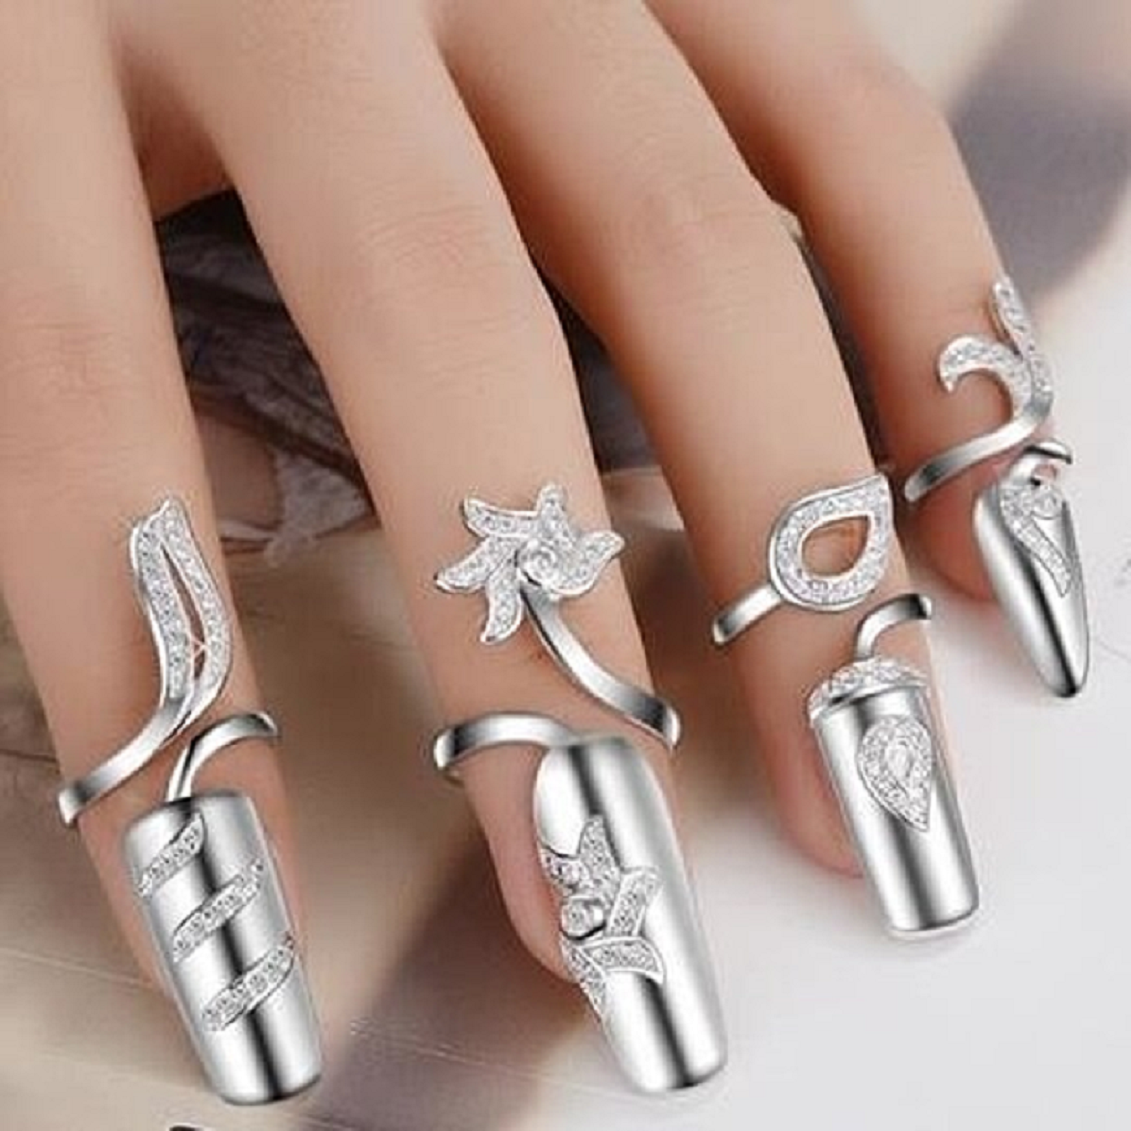 Nail ring bling 4PC Personality Fashion Creative Open Glittering Rhinestones Nail Ring